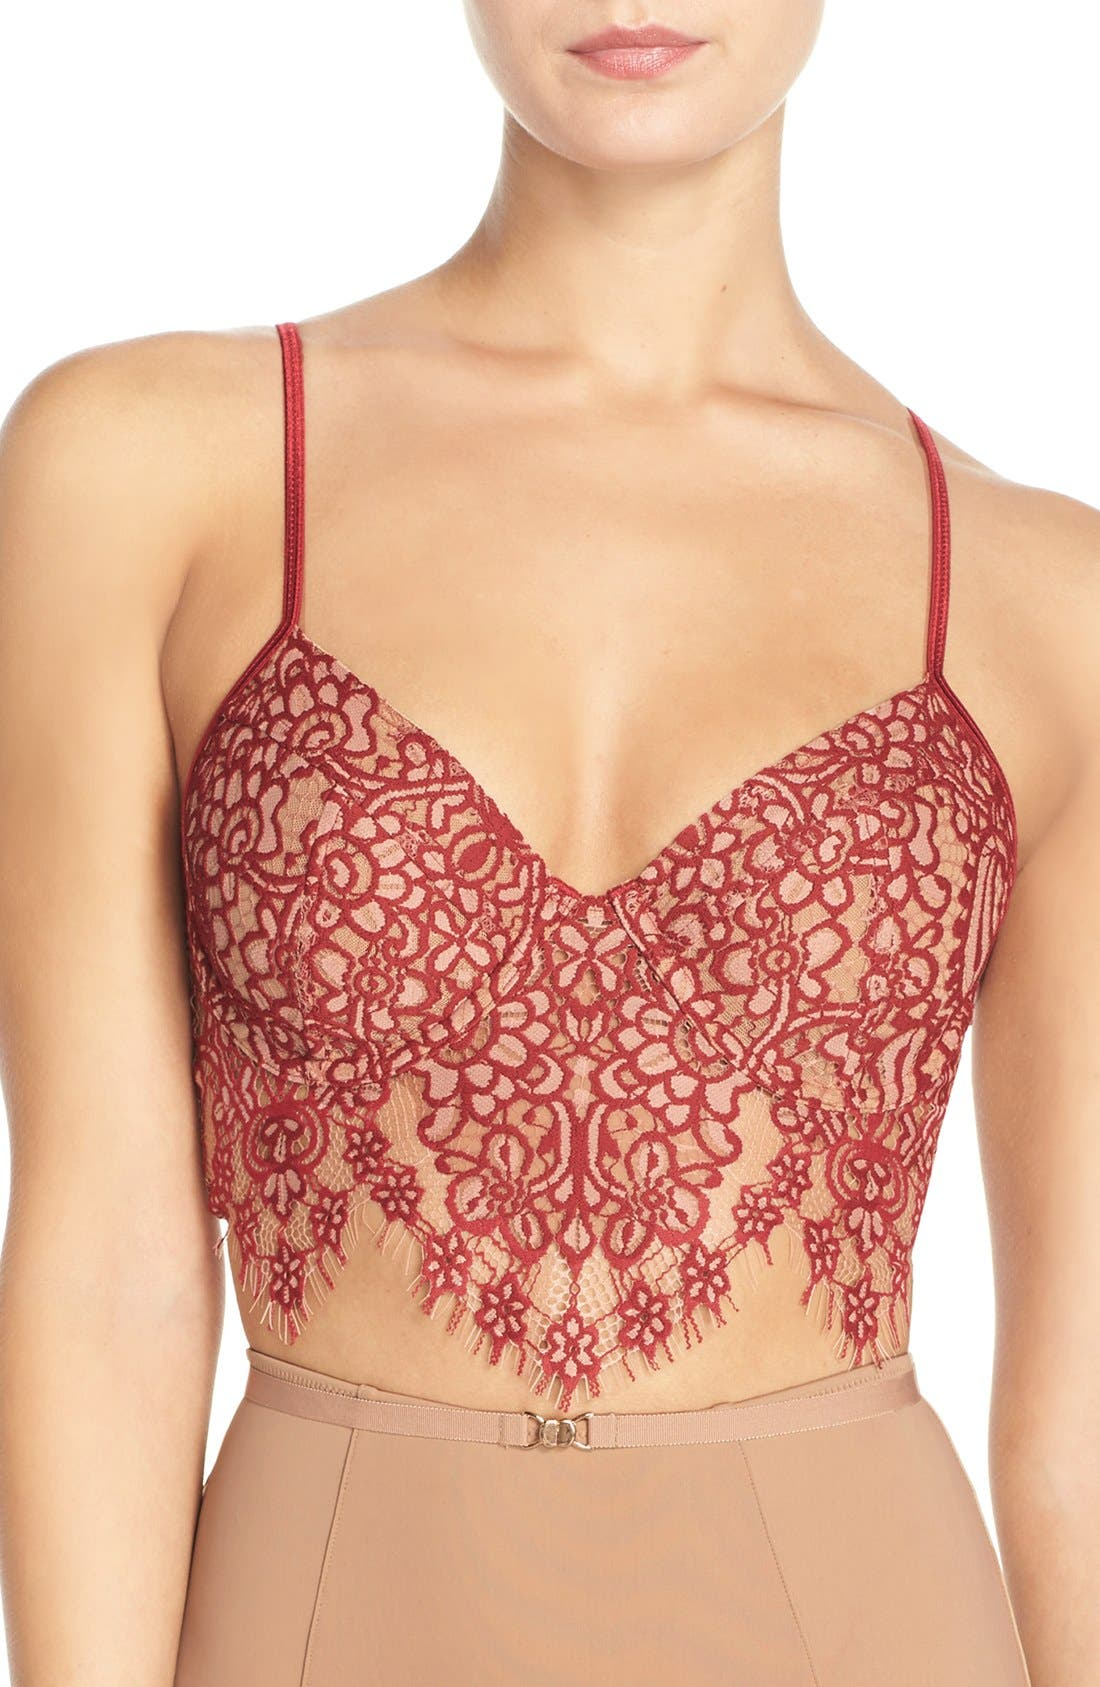 Main Image - For Love & Lemons 'Giselle' Underwire Longline Bra